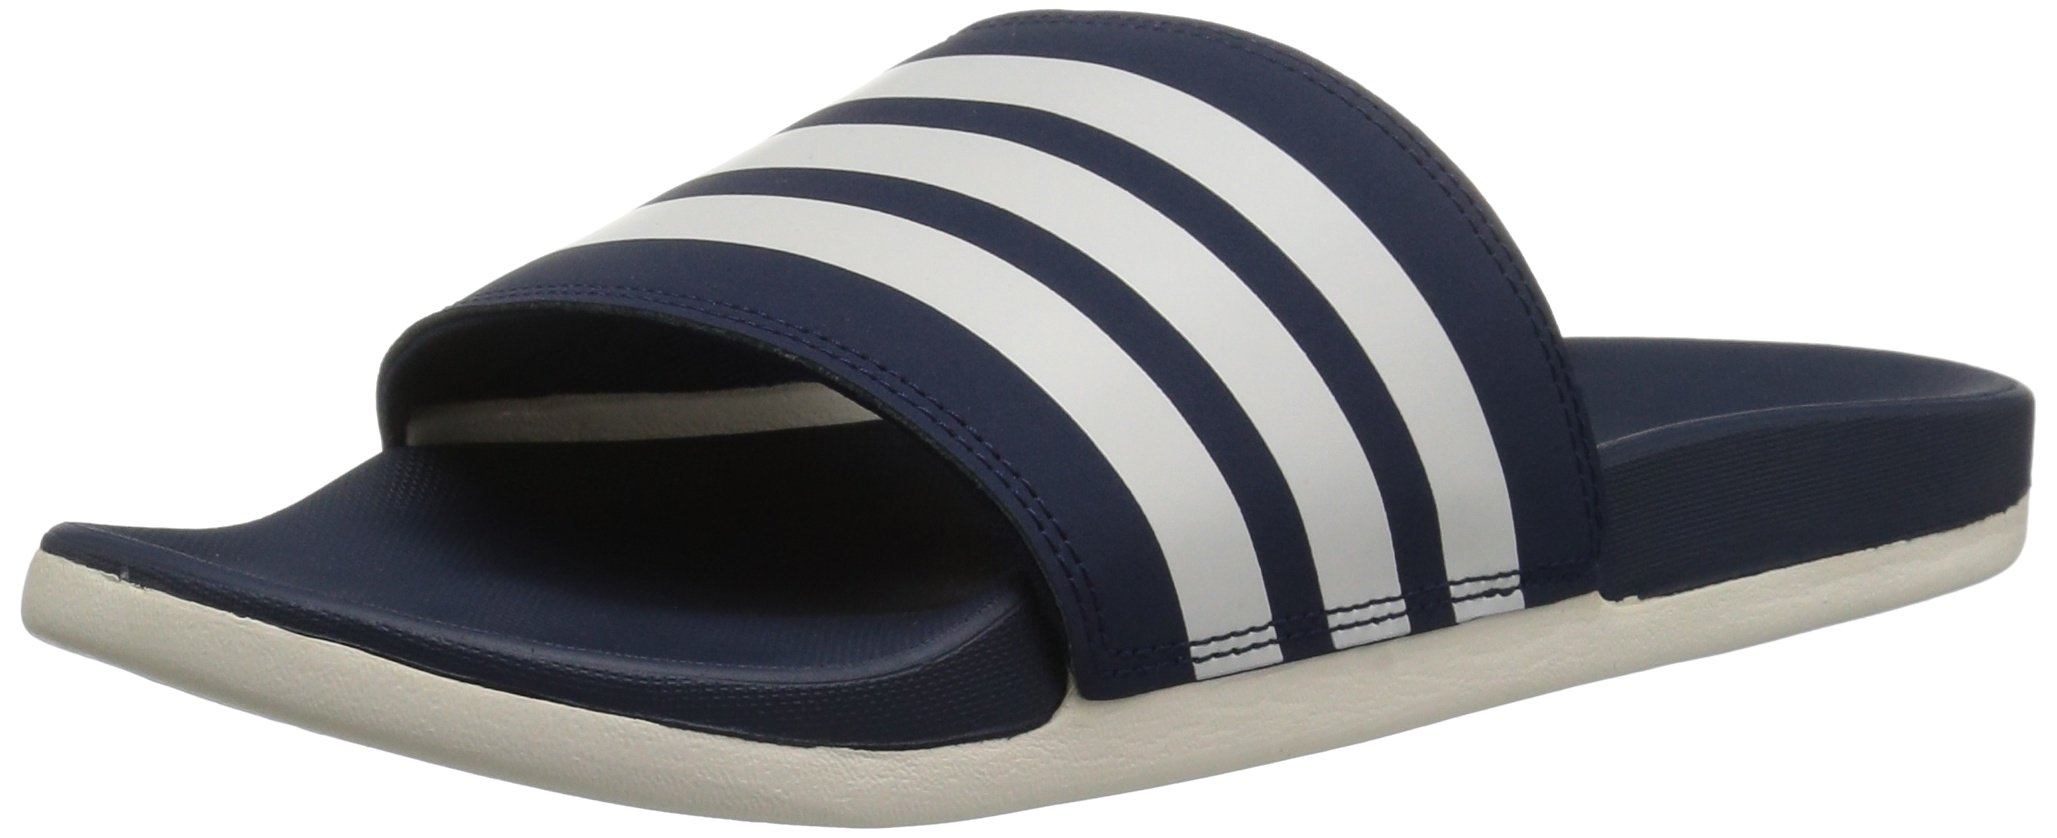 adidas Men's Adilette CF+ Slide Sandal, Collegiate Navy/Chalk White/Collegiate Navy, 12 M US by adidas